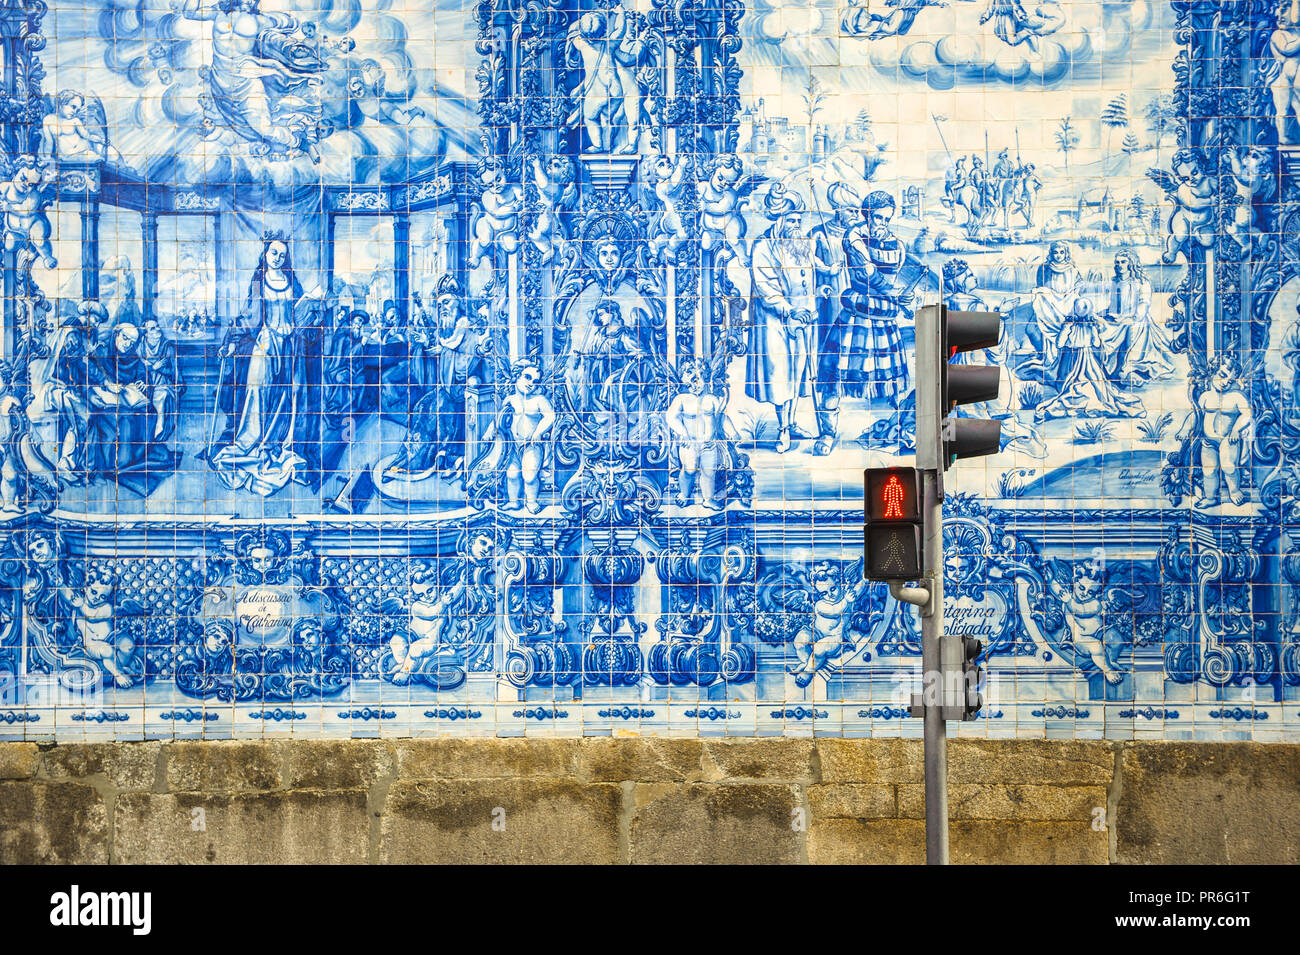 Street of Porto, decorated with azulejos tiles - Stock Image